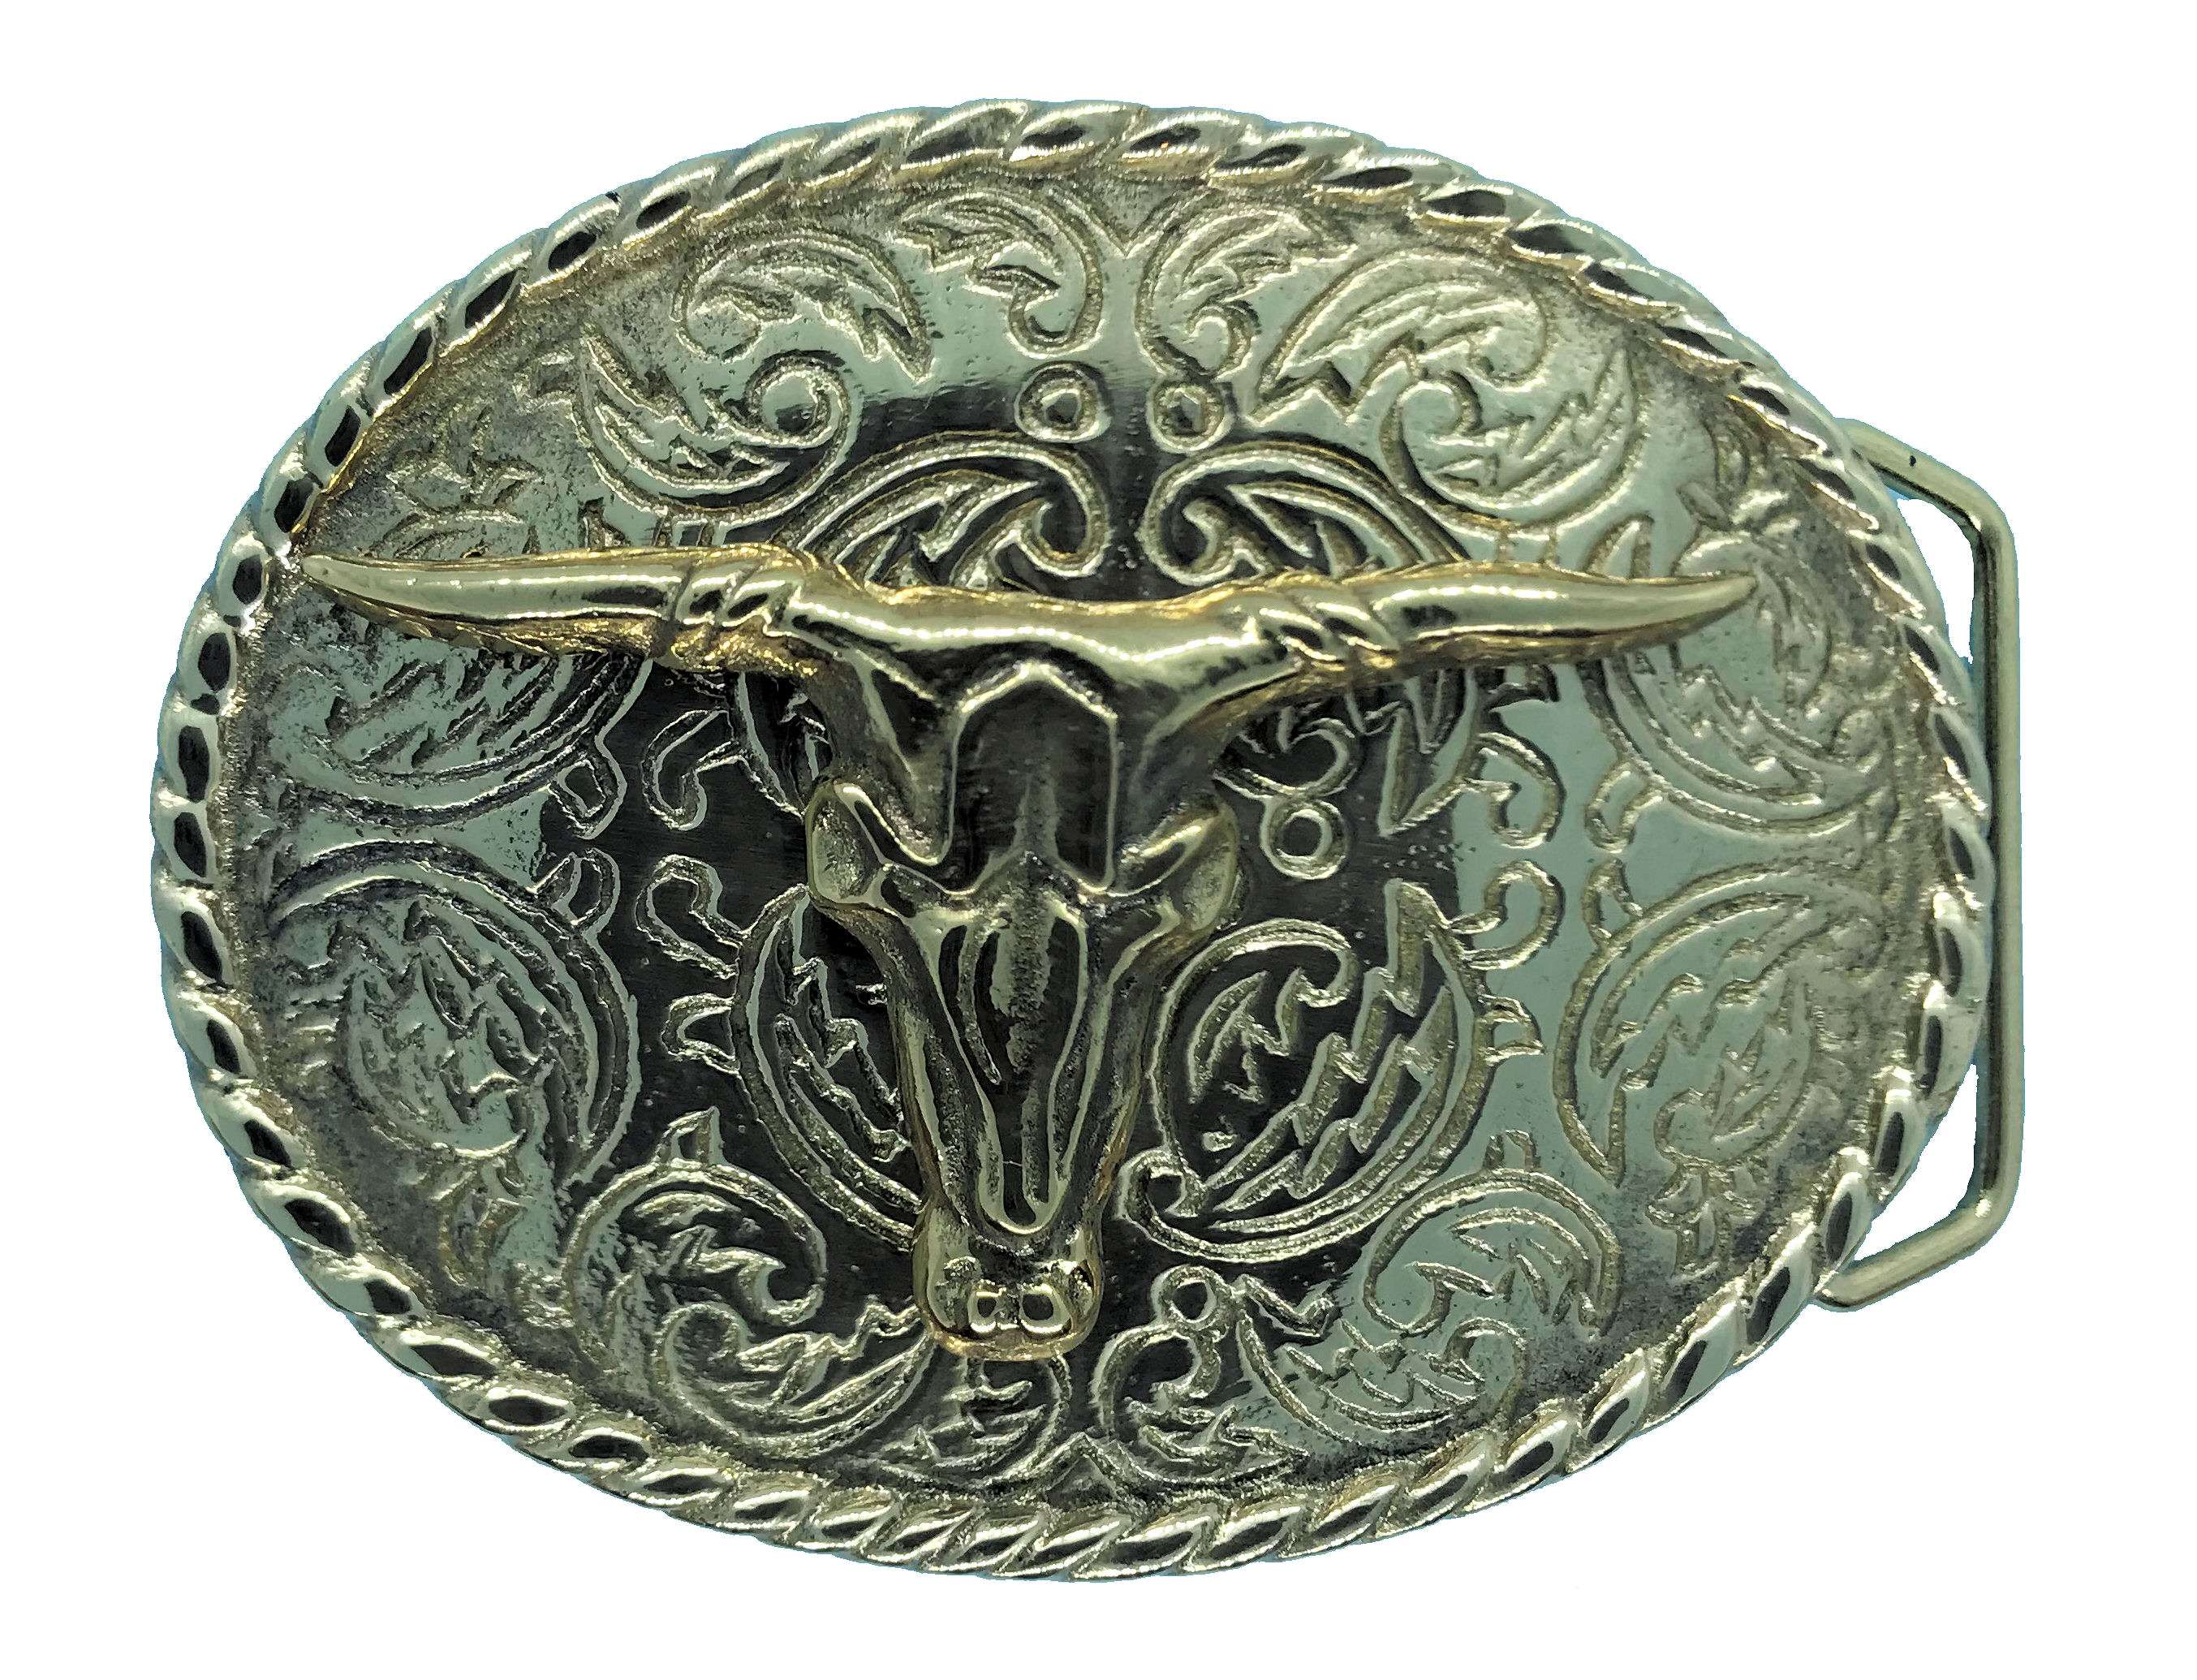 Rodeo Steer Brass Belt Buckle